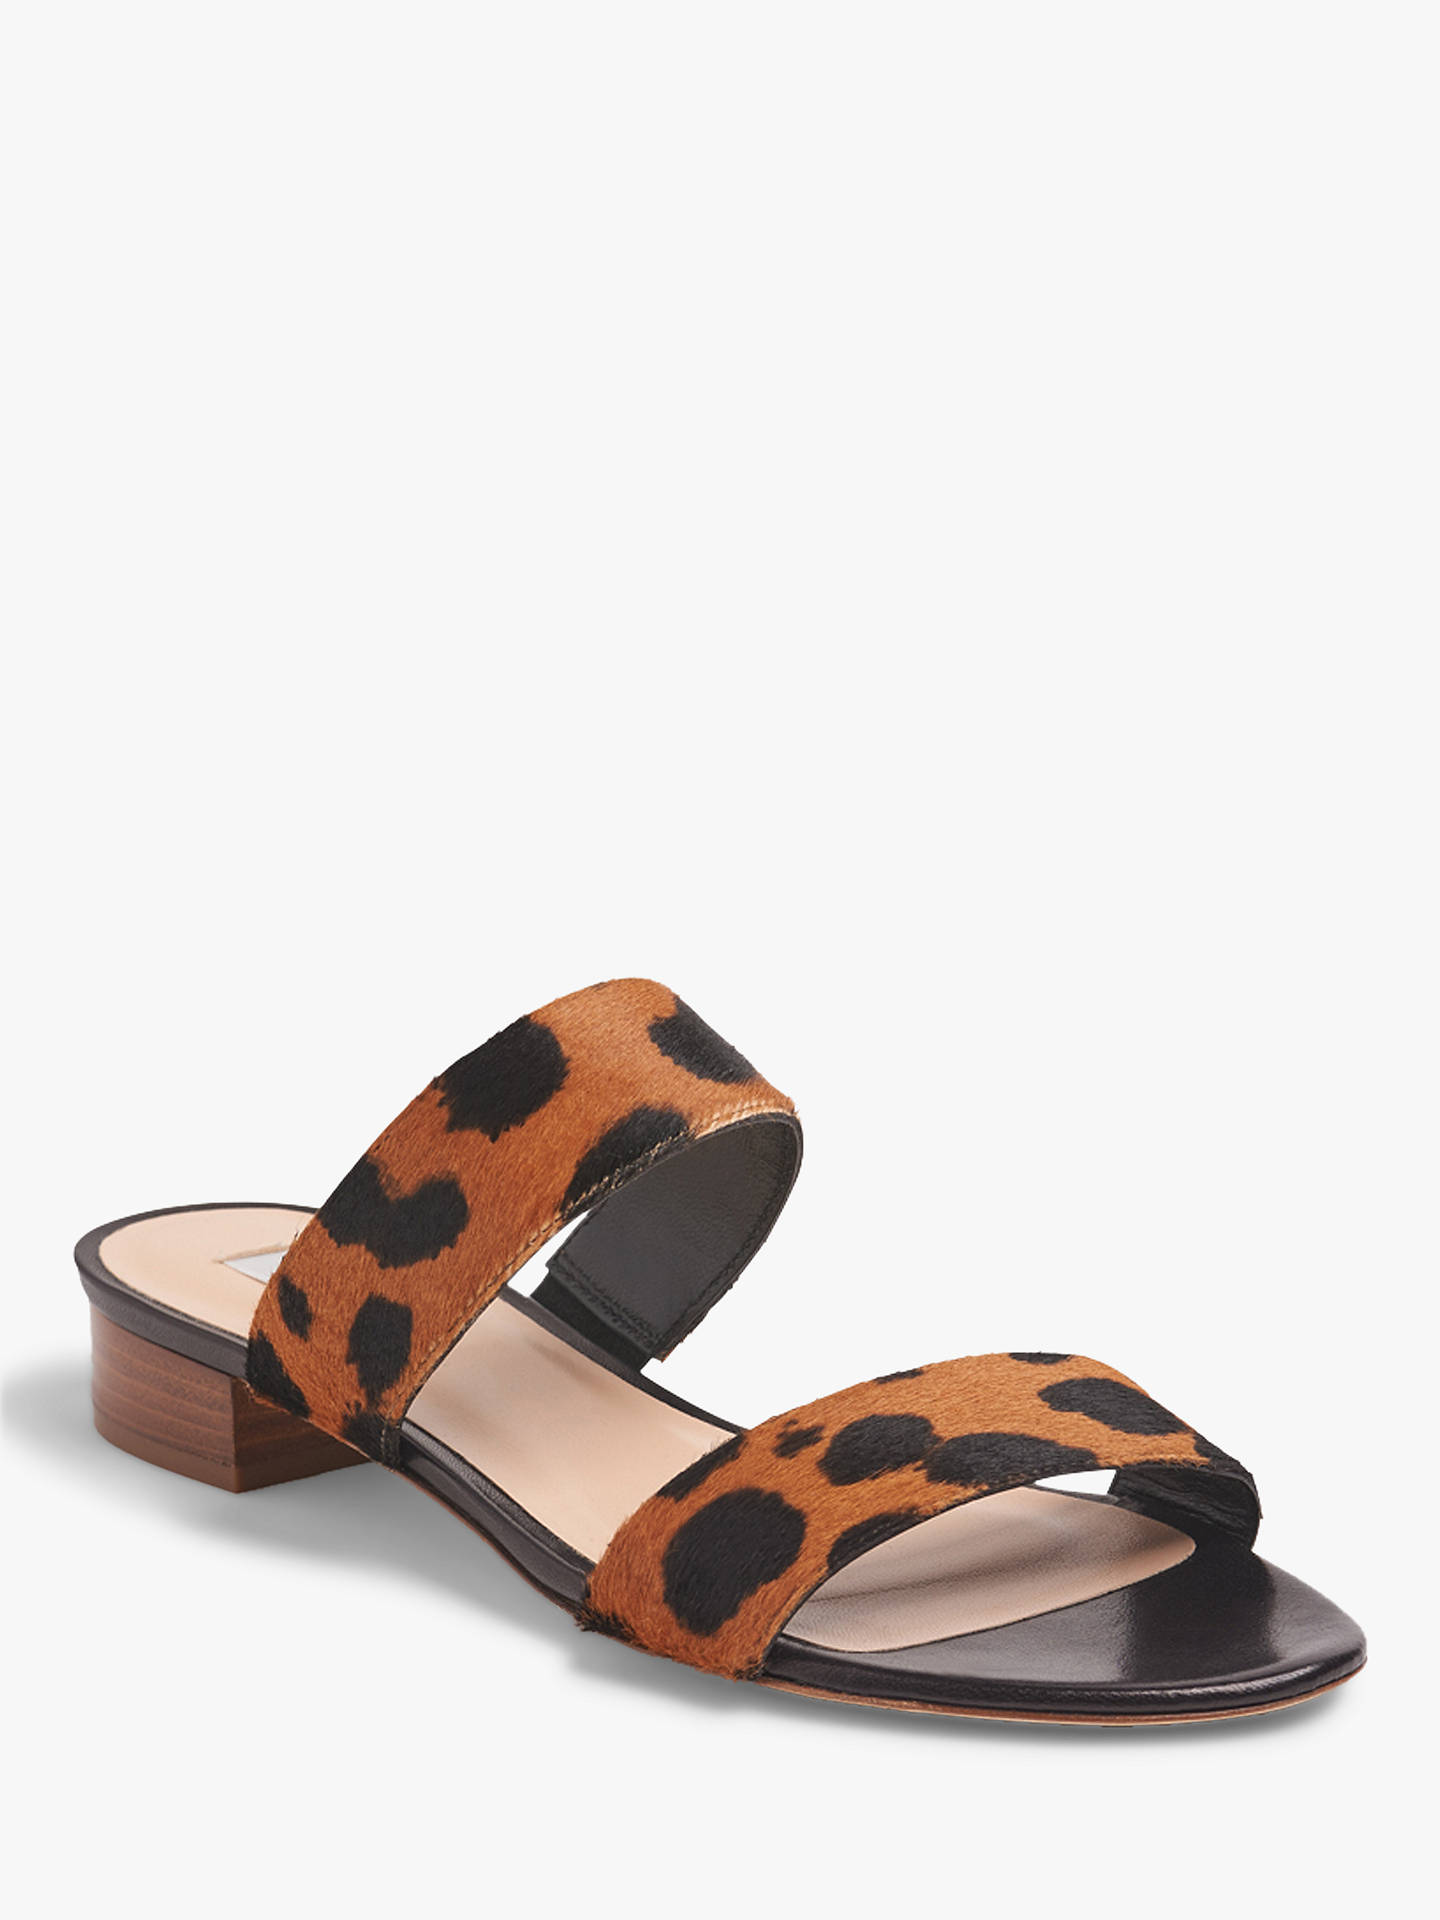 Buy L.K.Bennett Eveleen Double Strap Sandals, Leopard Leather, 8 Online at johnlewis.com